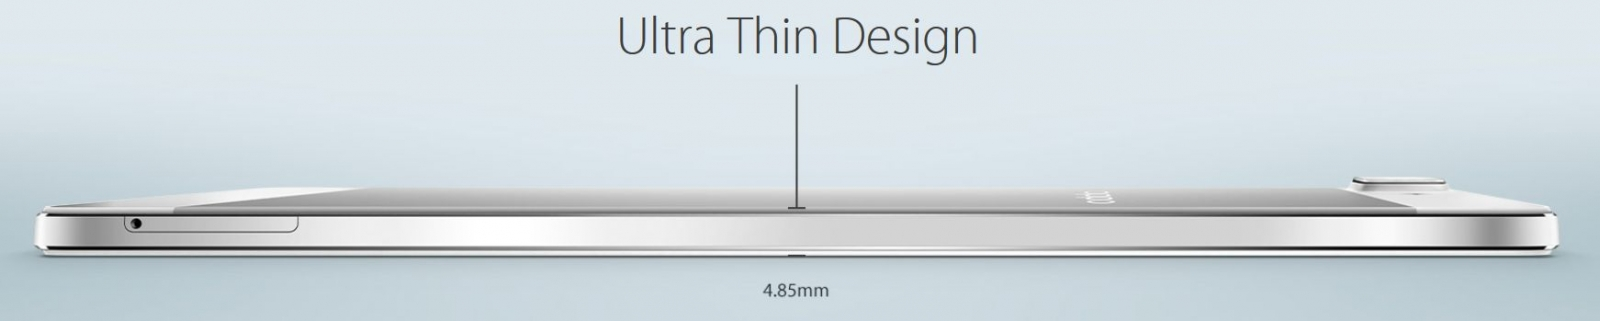 The Oppo R5 is the world's thinnest smartphone at just 4.85mm